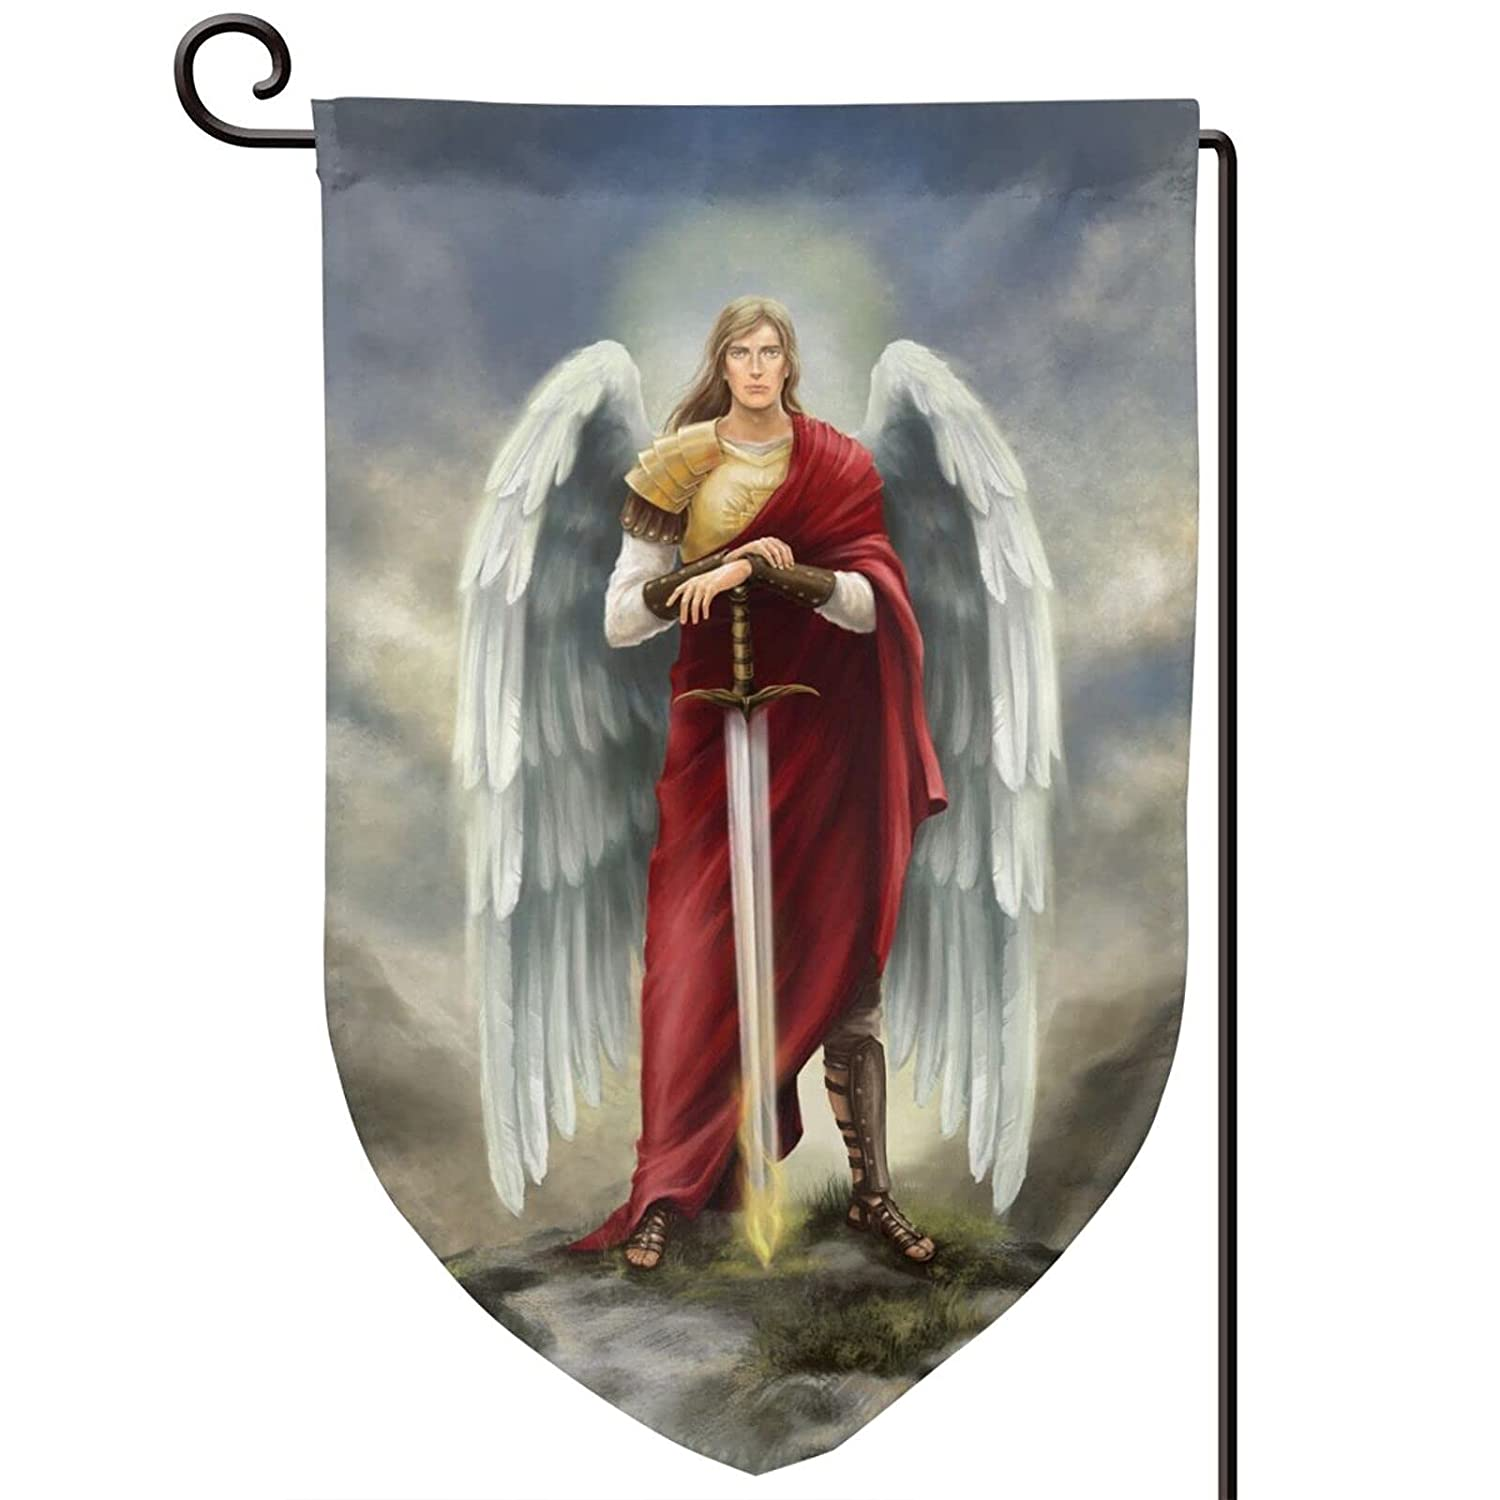 Archangel Michael Garden Flags Outside Flag Porch Patio Yard Flags Outdoor Decorative Banner 12.8x18in